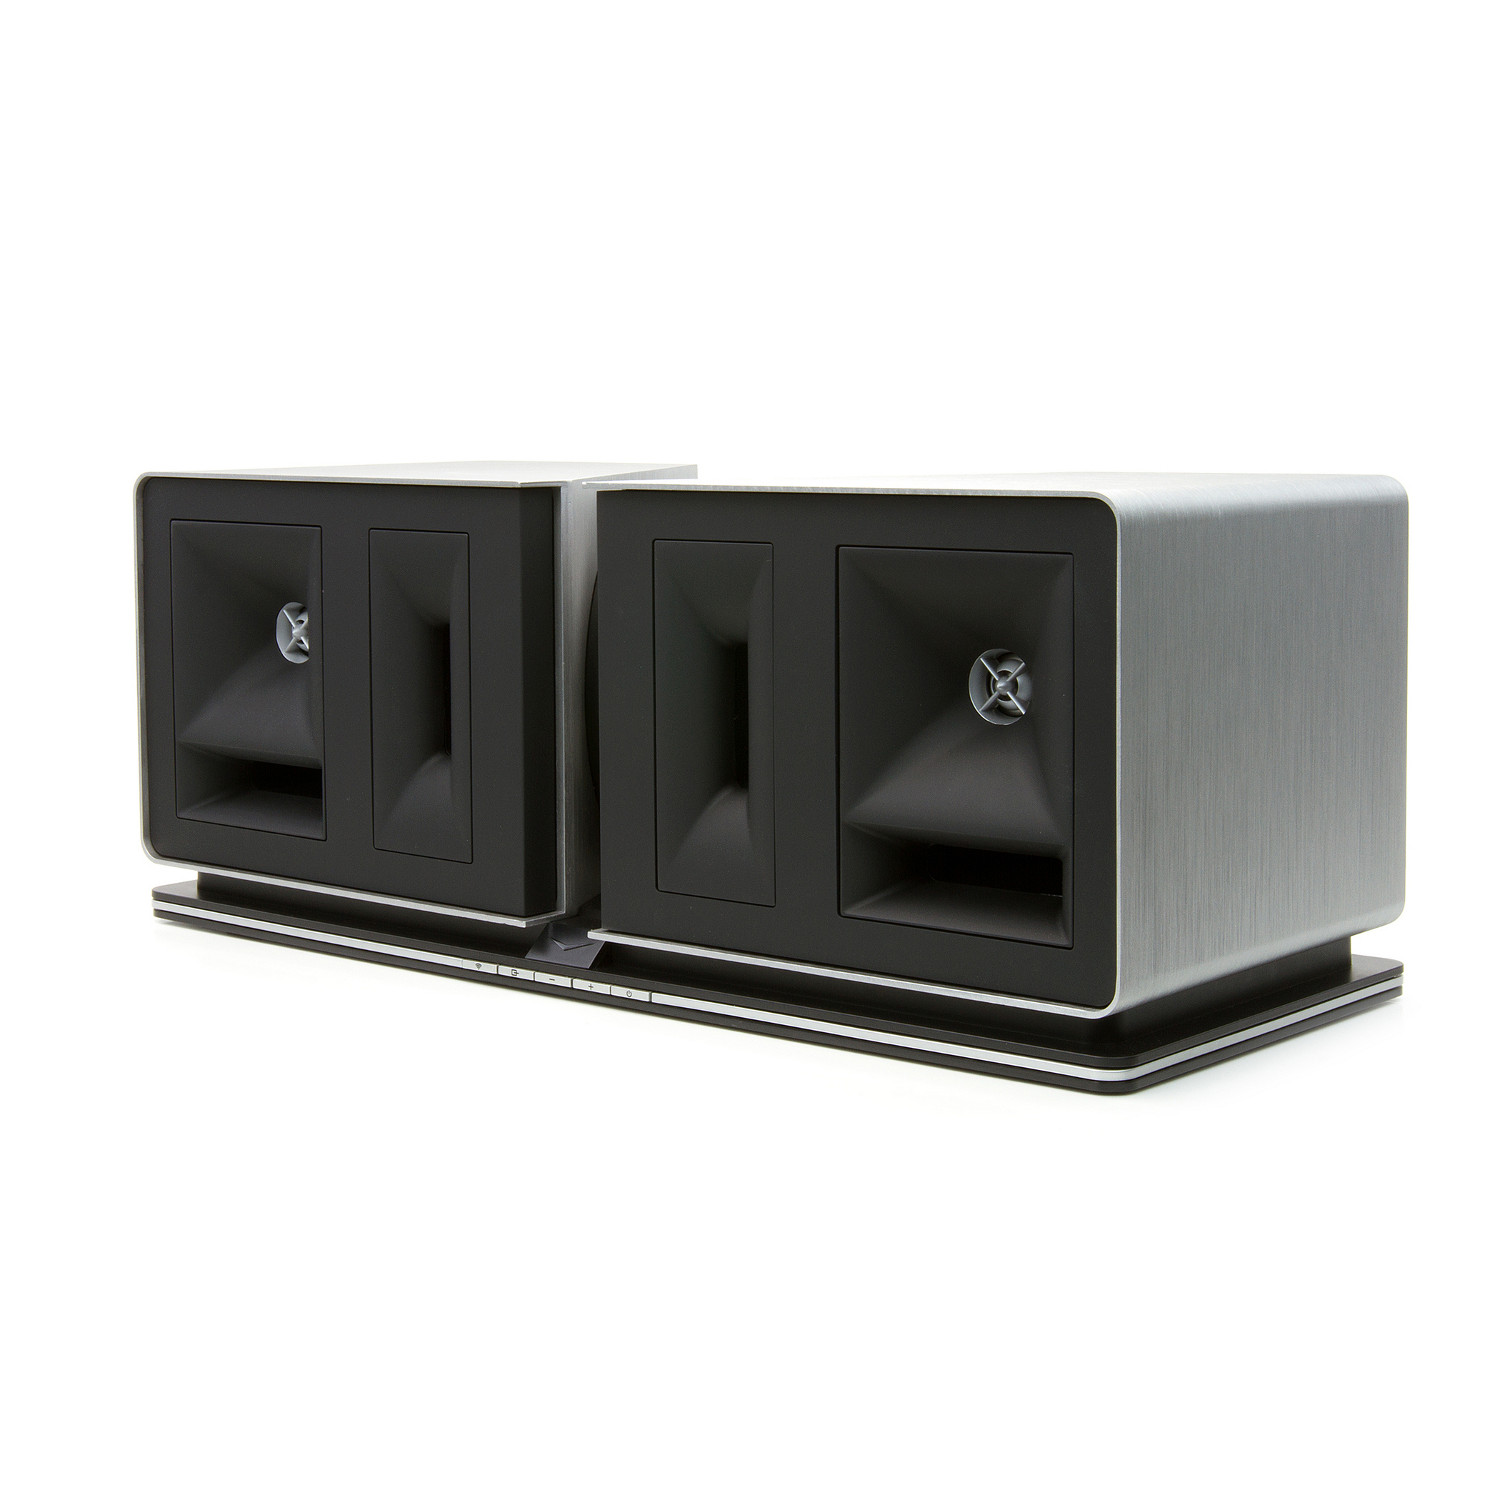 klipsch stadium lautsprecher airplay bluetooth usb kaufen bax shop. Black Bedroom Furniture Sets. Home Design Ideas